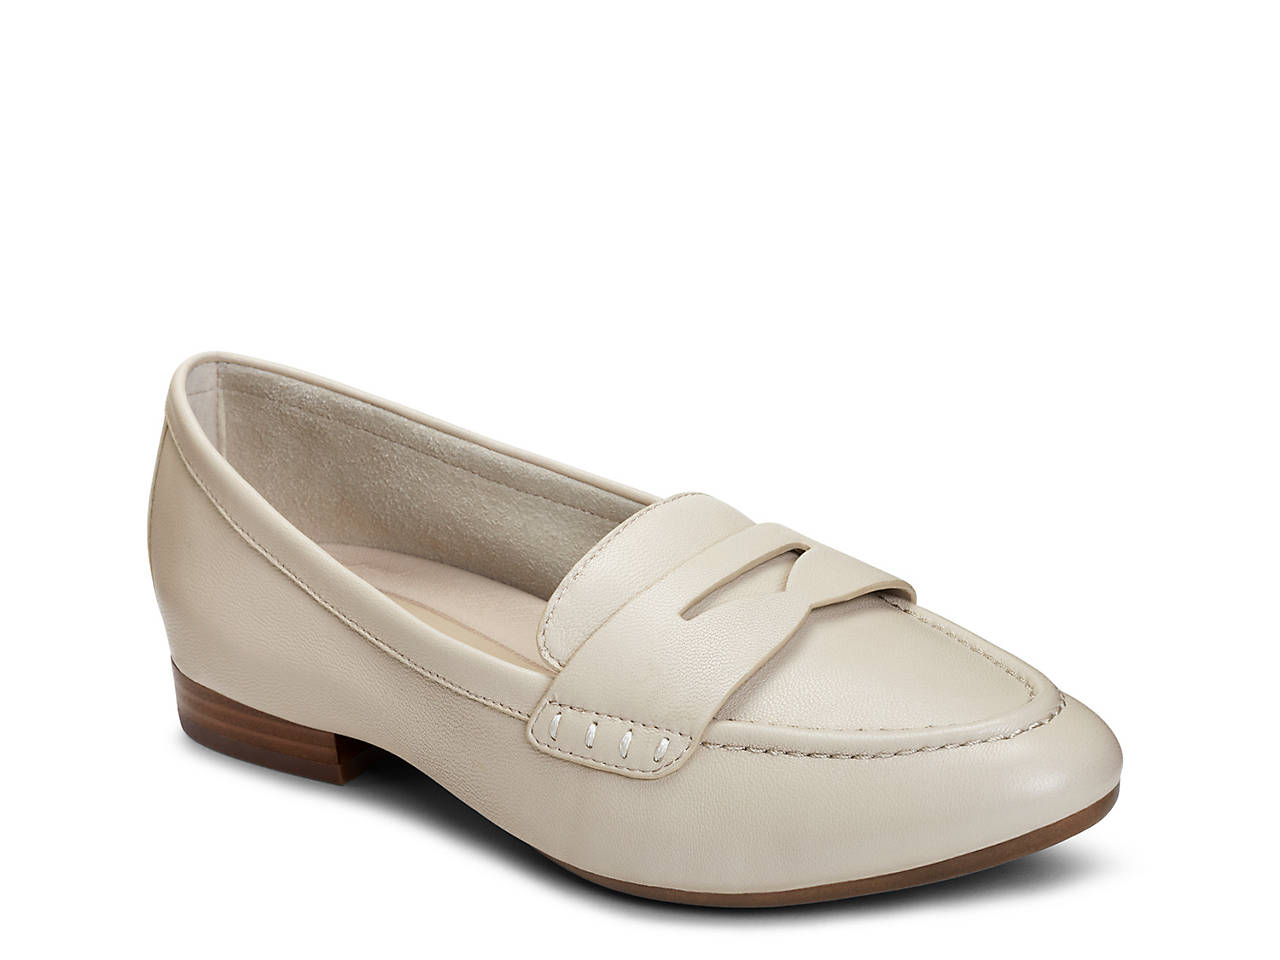 bf436378fc Aerosoles Map Out Penny Loafer Women s Shoes